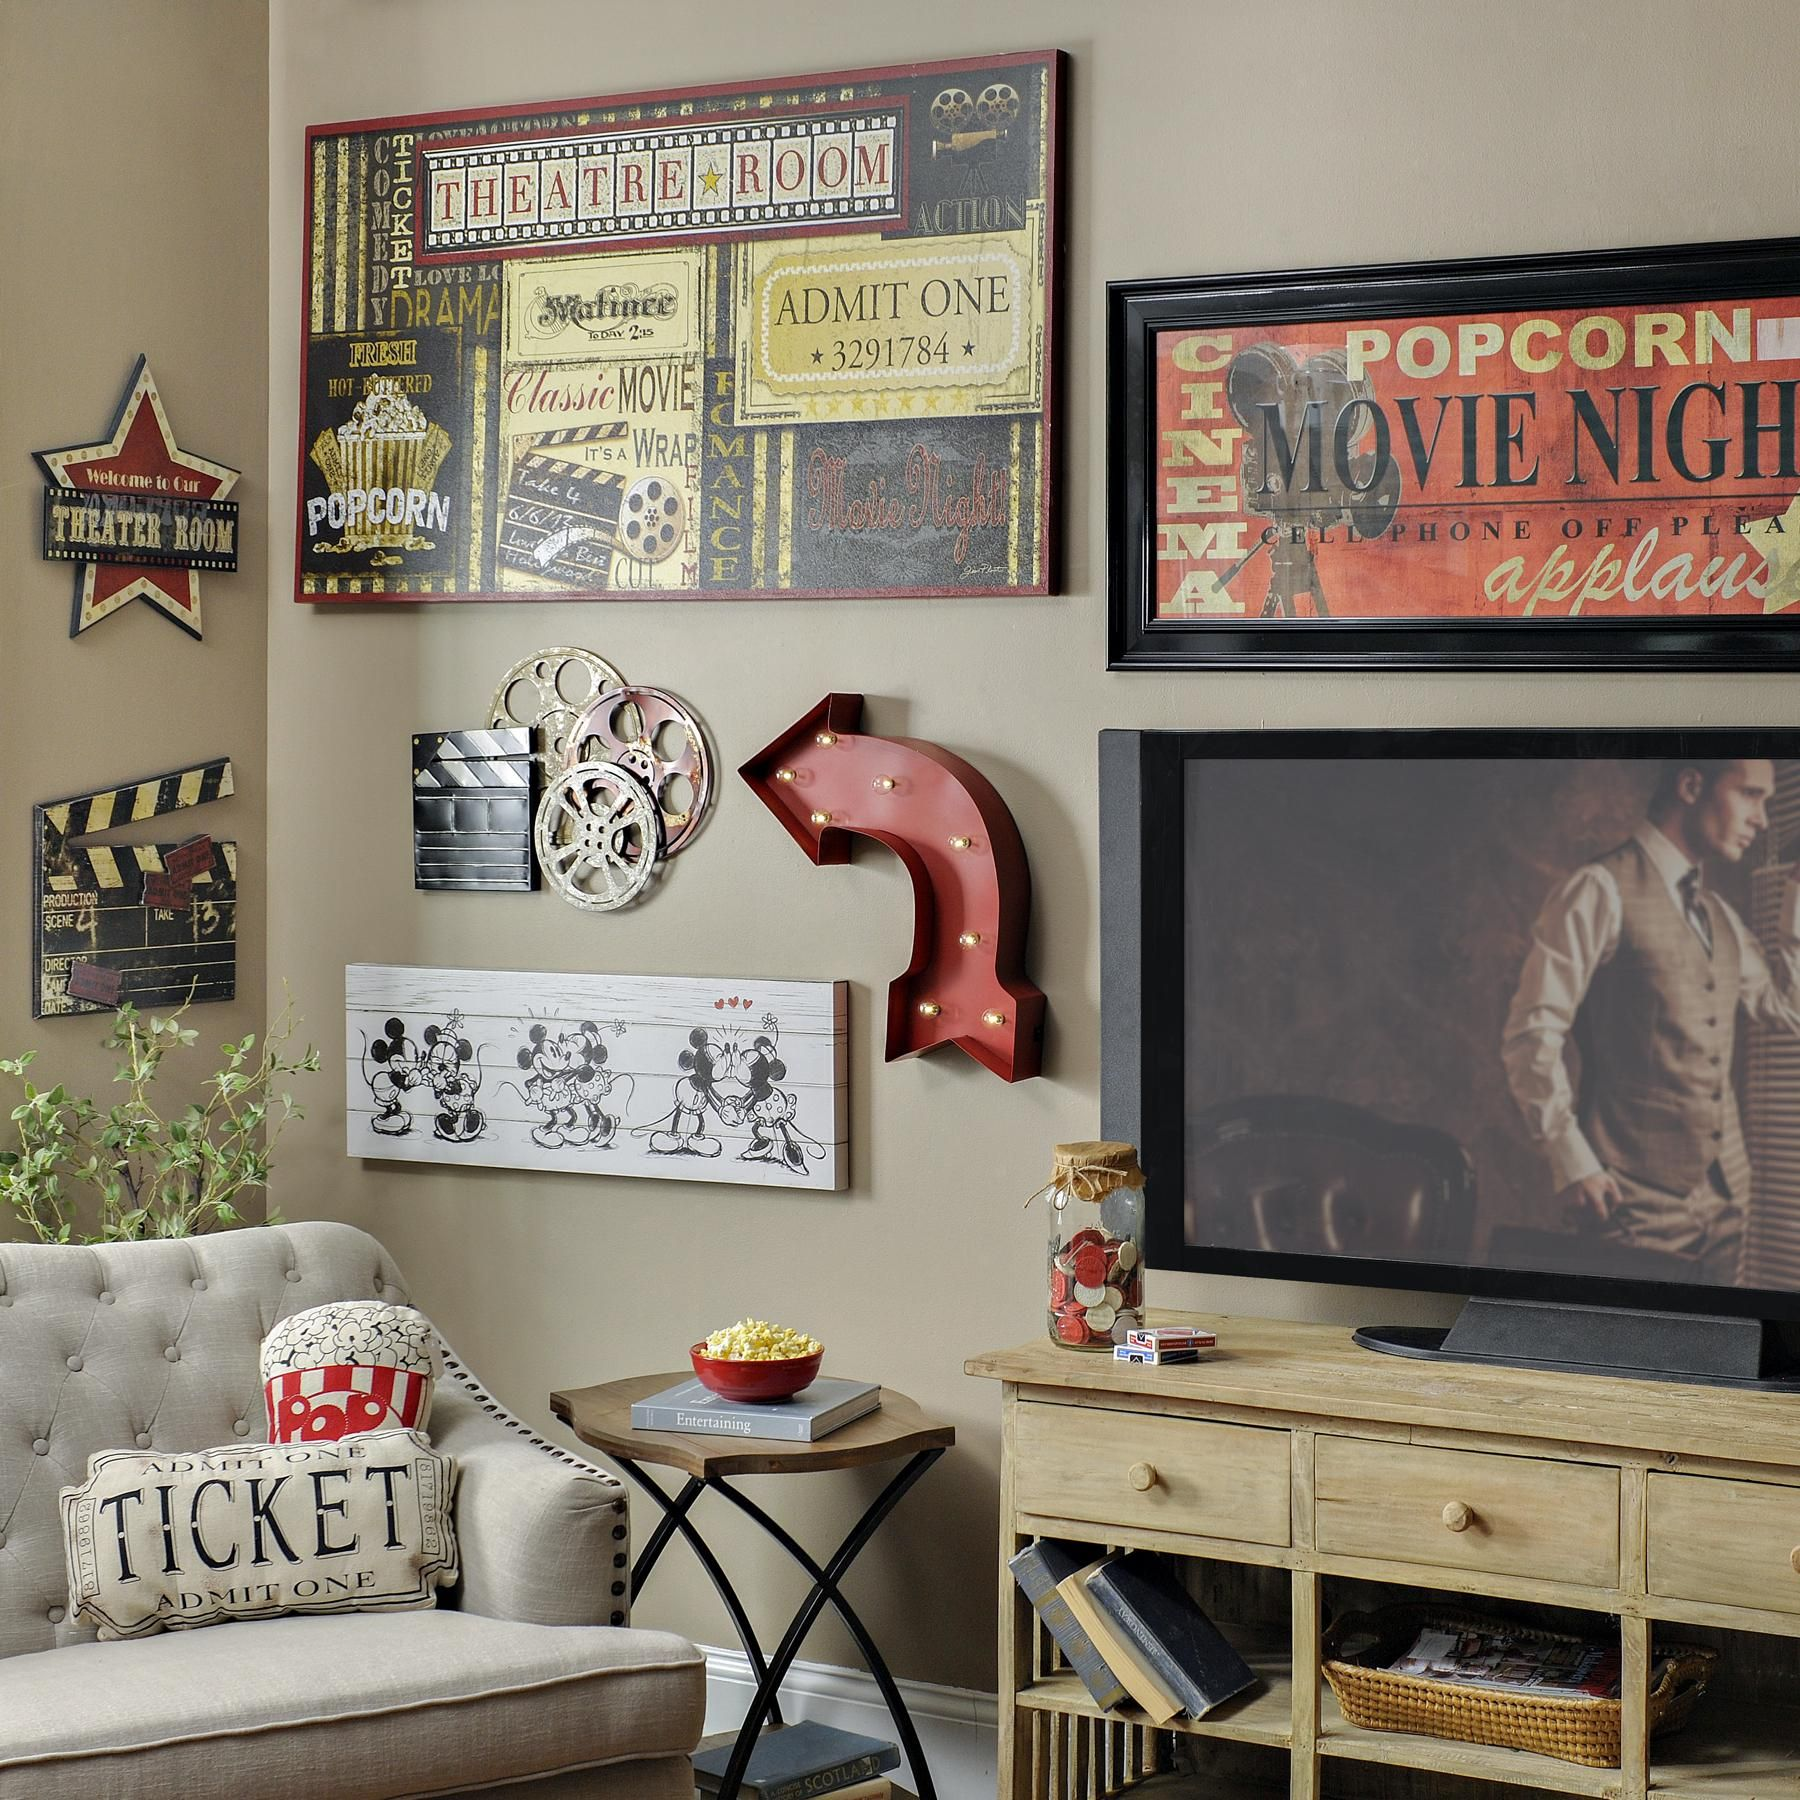 Home Bedroom Theater Cinema: Film Lovers, We Have The Movie Decor You've Been Searching